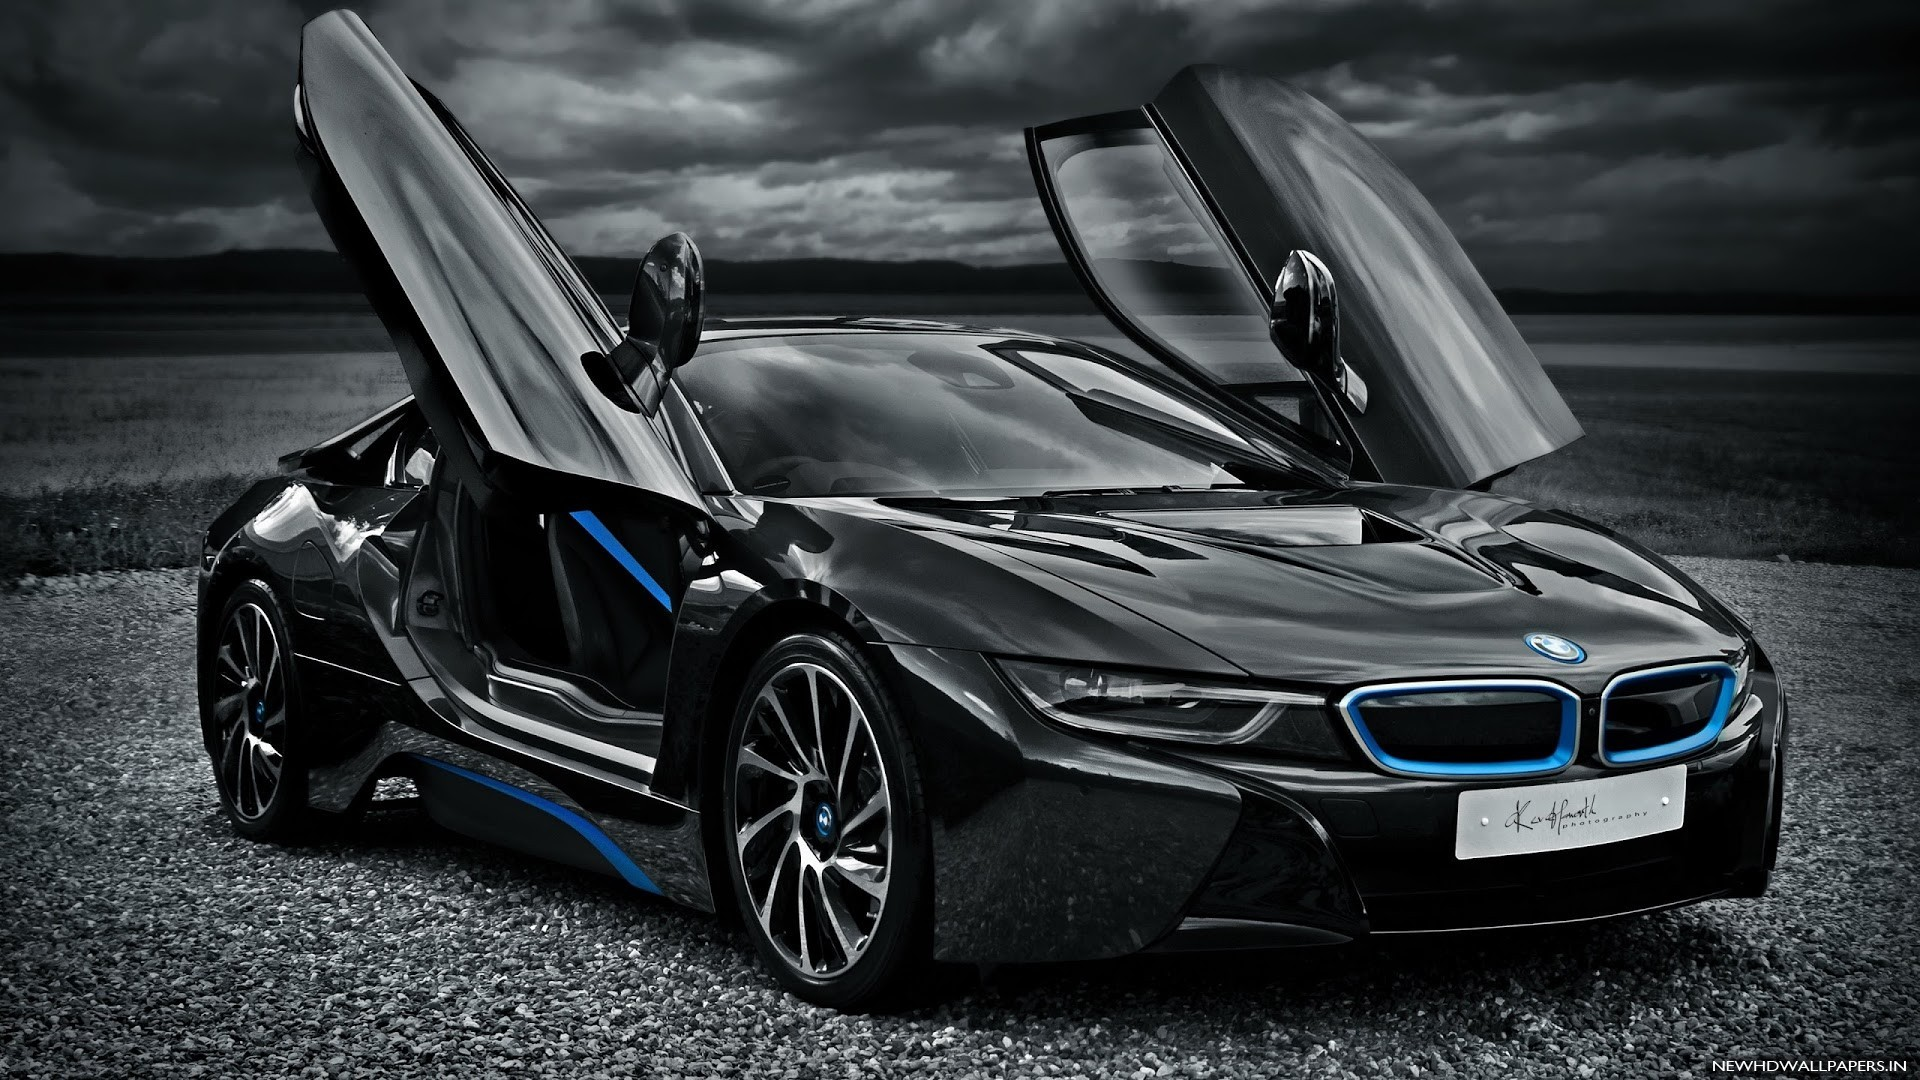 Bmw I8 Wallpaper HD Download